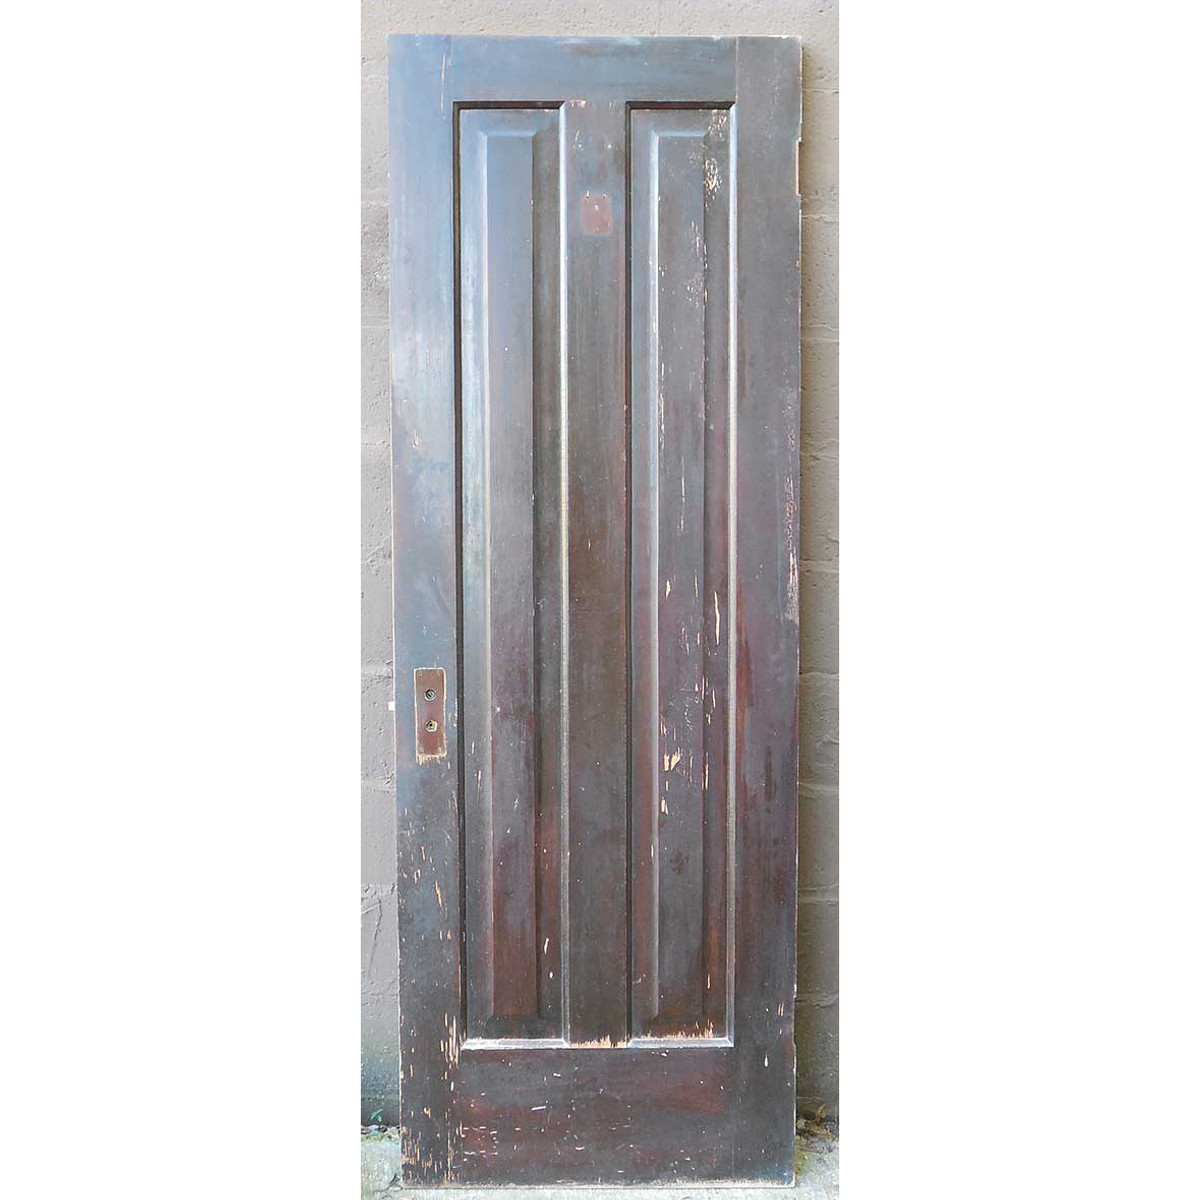 "D14143 - Antique Two Panel Door 28"" x 79-3/4"""